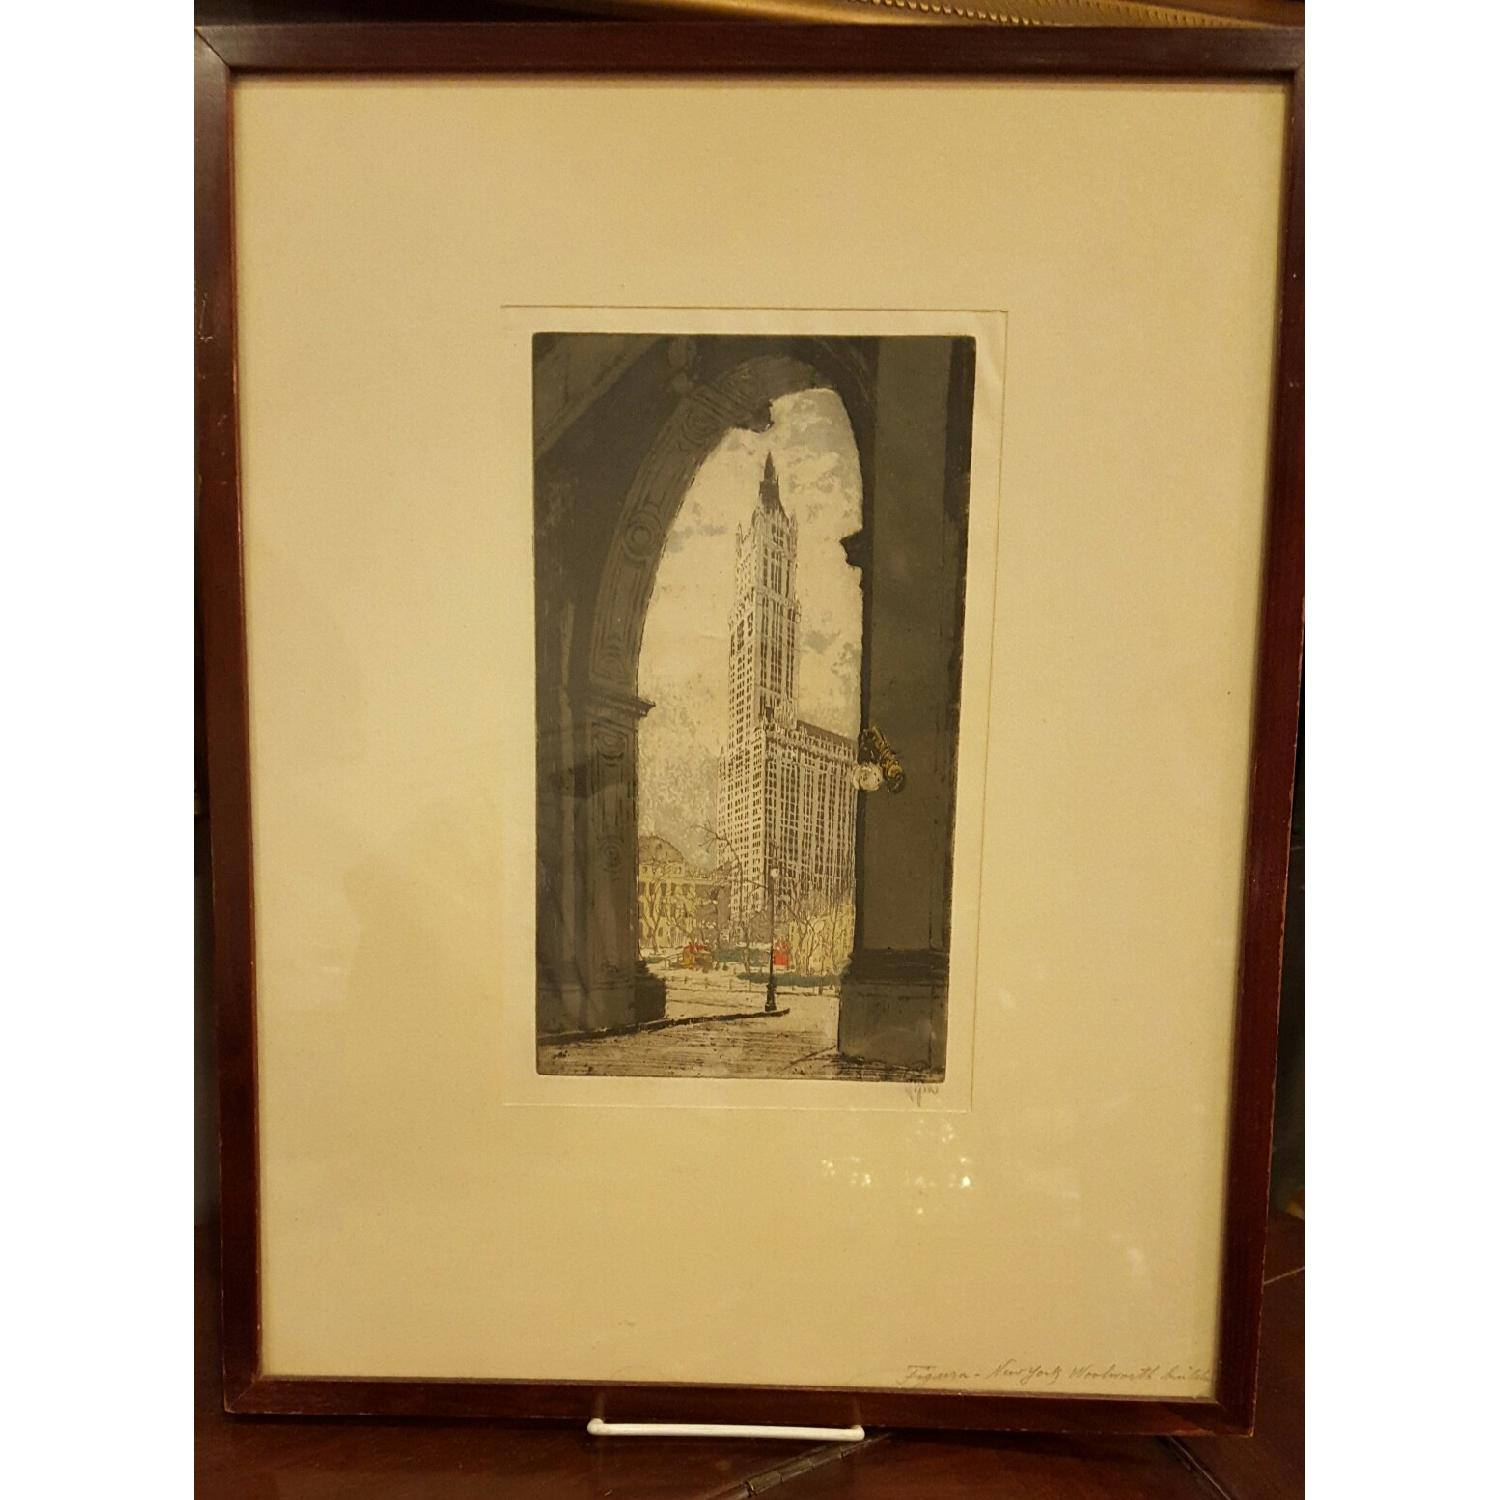 Hans Figura c1930 Etching - The Woolworth Building - image-3